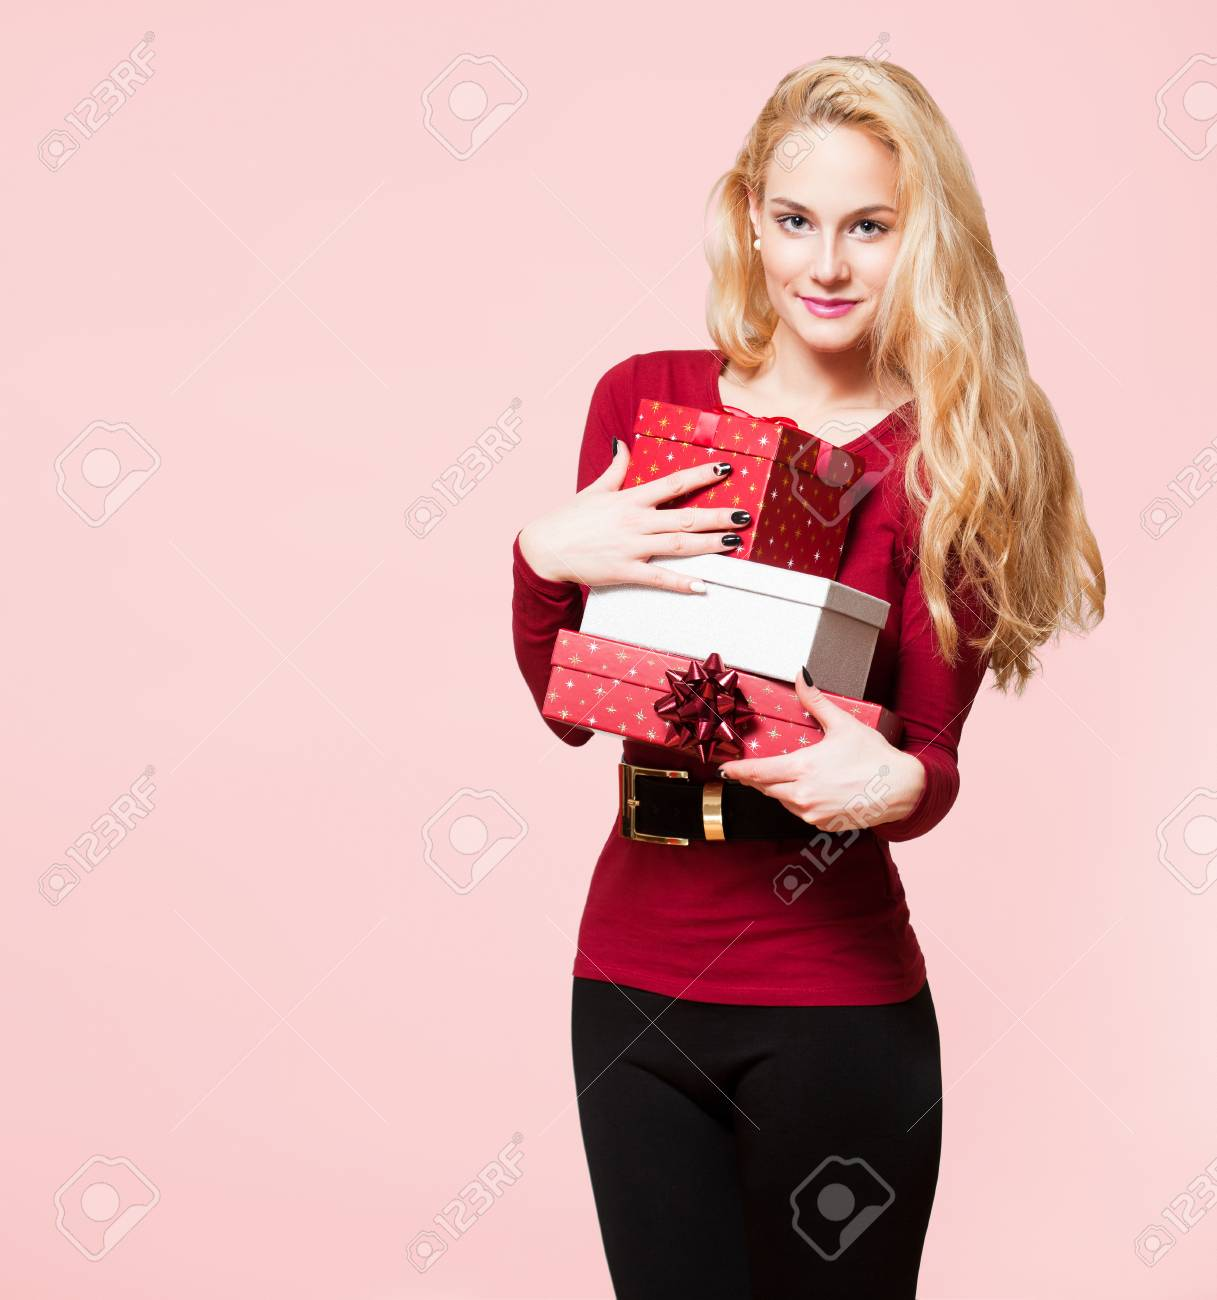 Christmas Beauty.Portrait Of A Blond Christmas Beauty Holding Gift Boxes